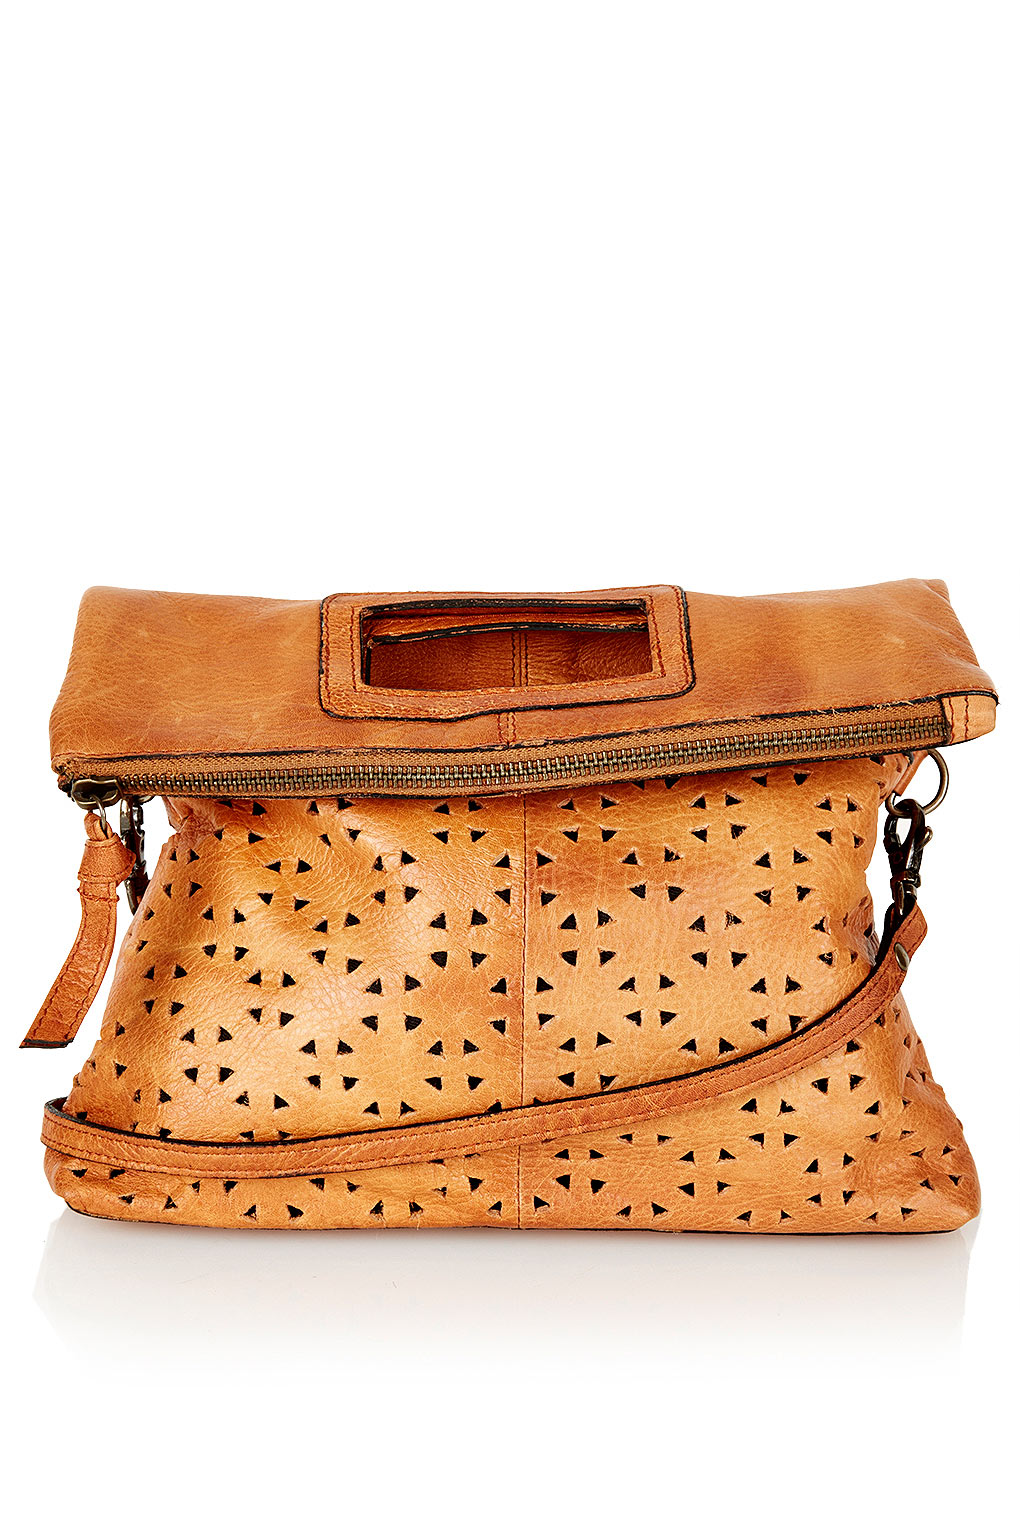 Topshop Perforated Leather Crossbody Bag 102